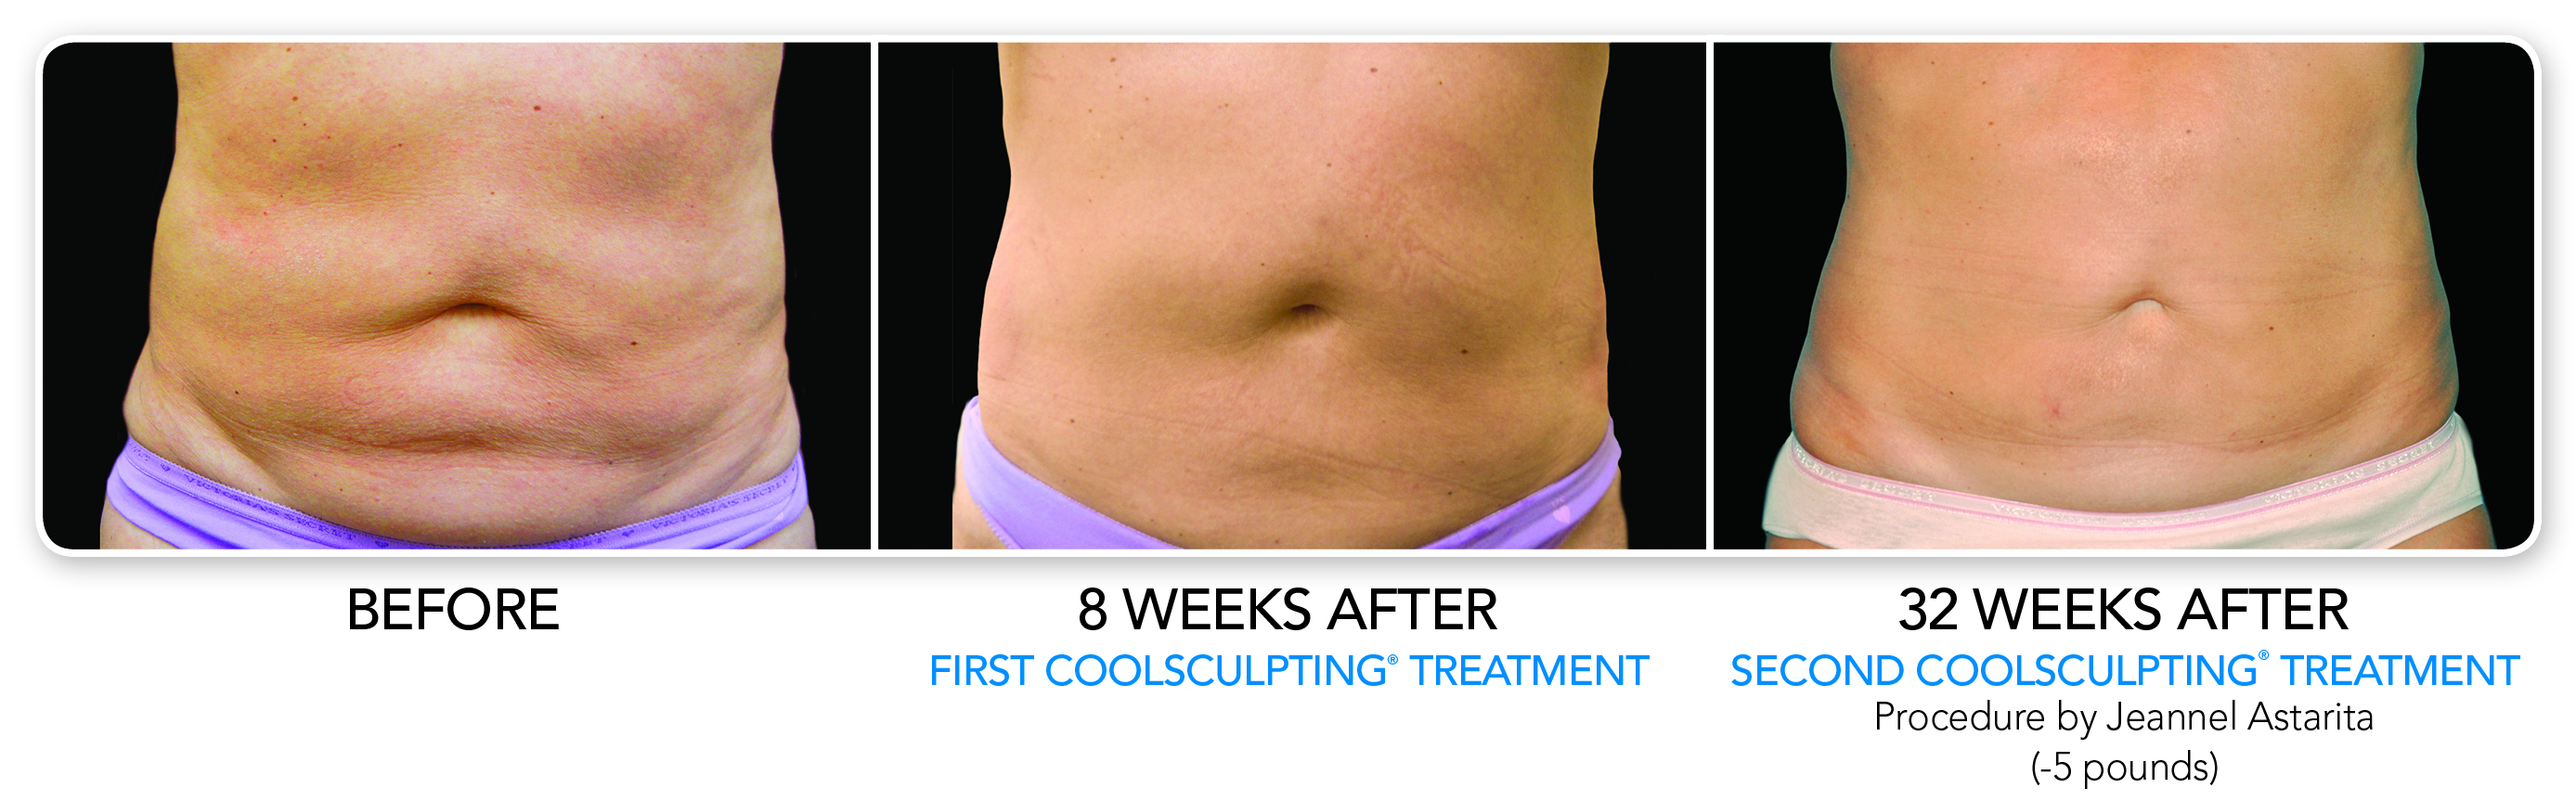 CoolSculpt Treatment 32 Weeks